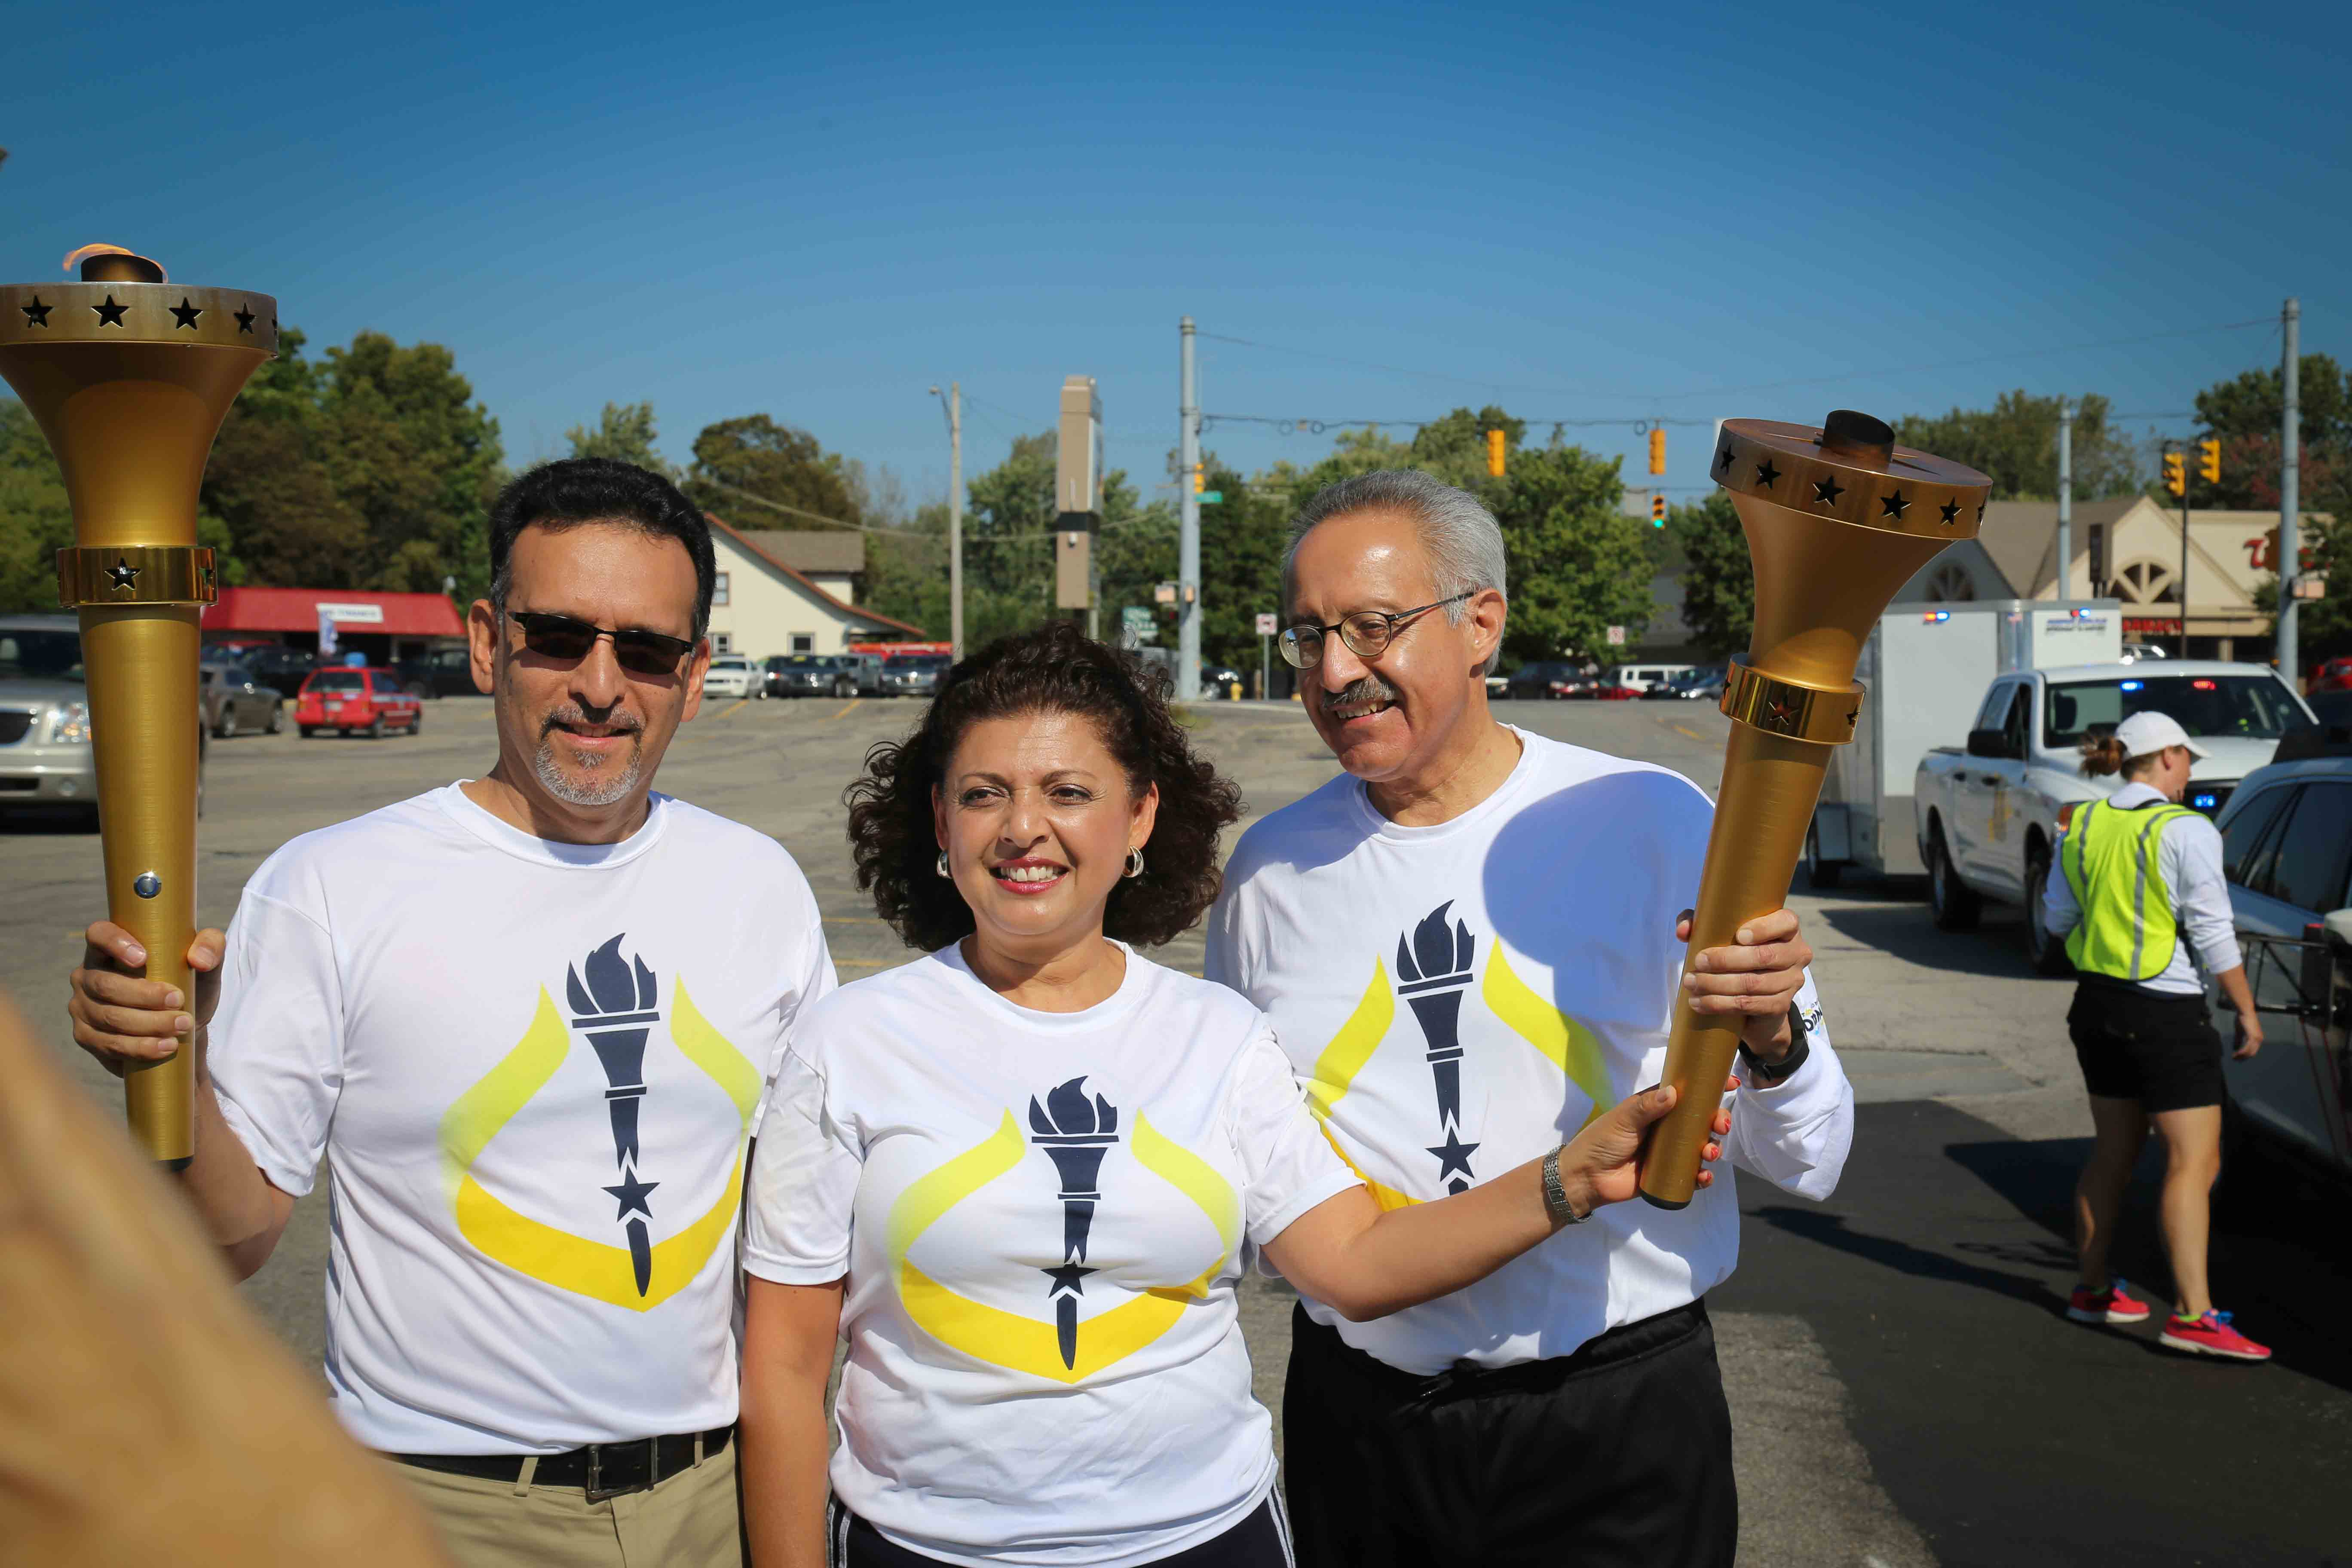 From left: Gilberto Pérez Jr., Rocio Diaz and Richard Aguirre were among the 40 torch bearers on Oct. 4, 2016.